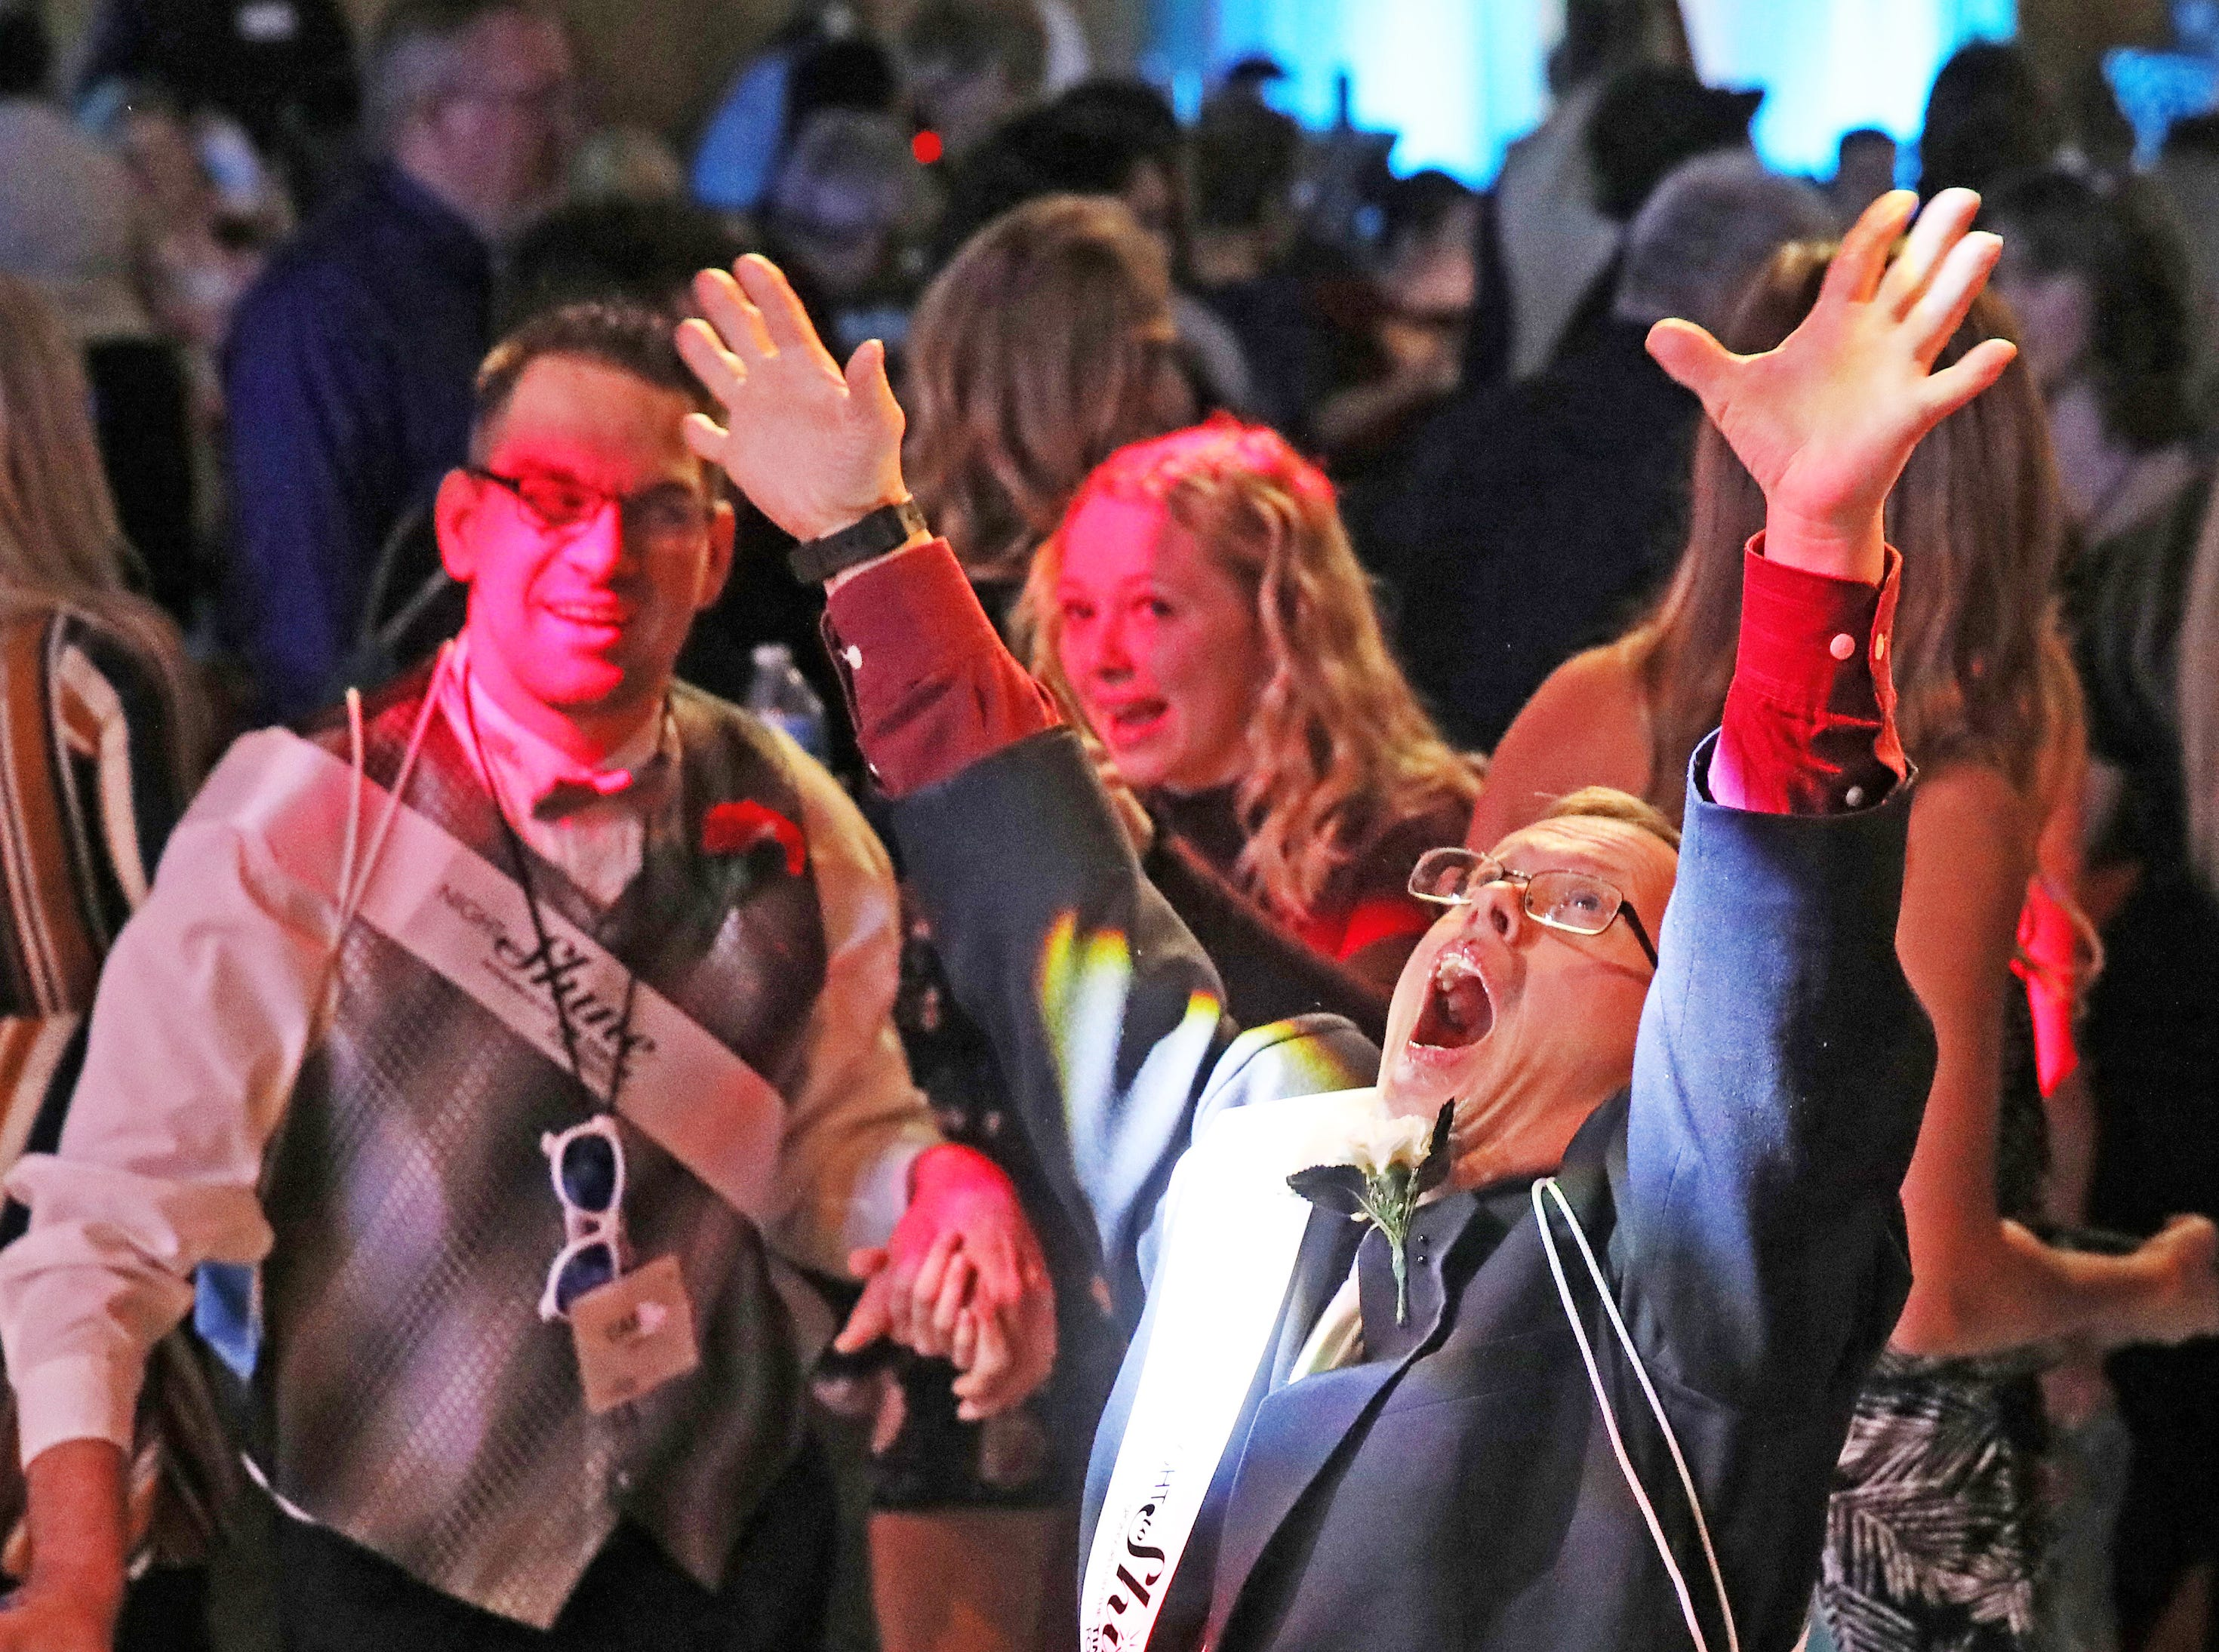 Shawn Flinn dances to Y-M-C-A during the Night to Shine event at Prairie Ridge Church in Ankeny on Friday, Feb. 8, 2019. Sponsored by the Tim Tebow Foundation, the event for adults with special needs features a prom-like atmosphere with dancing, limo rides, food and more.